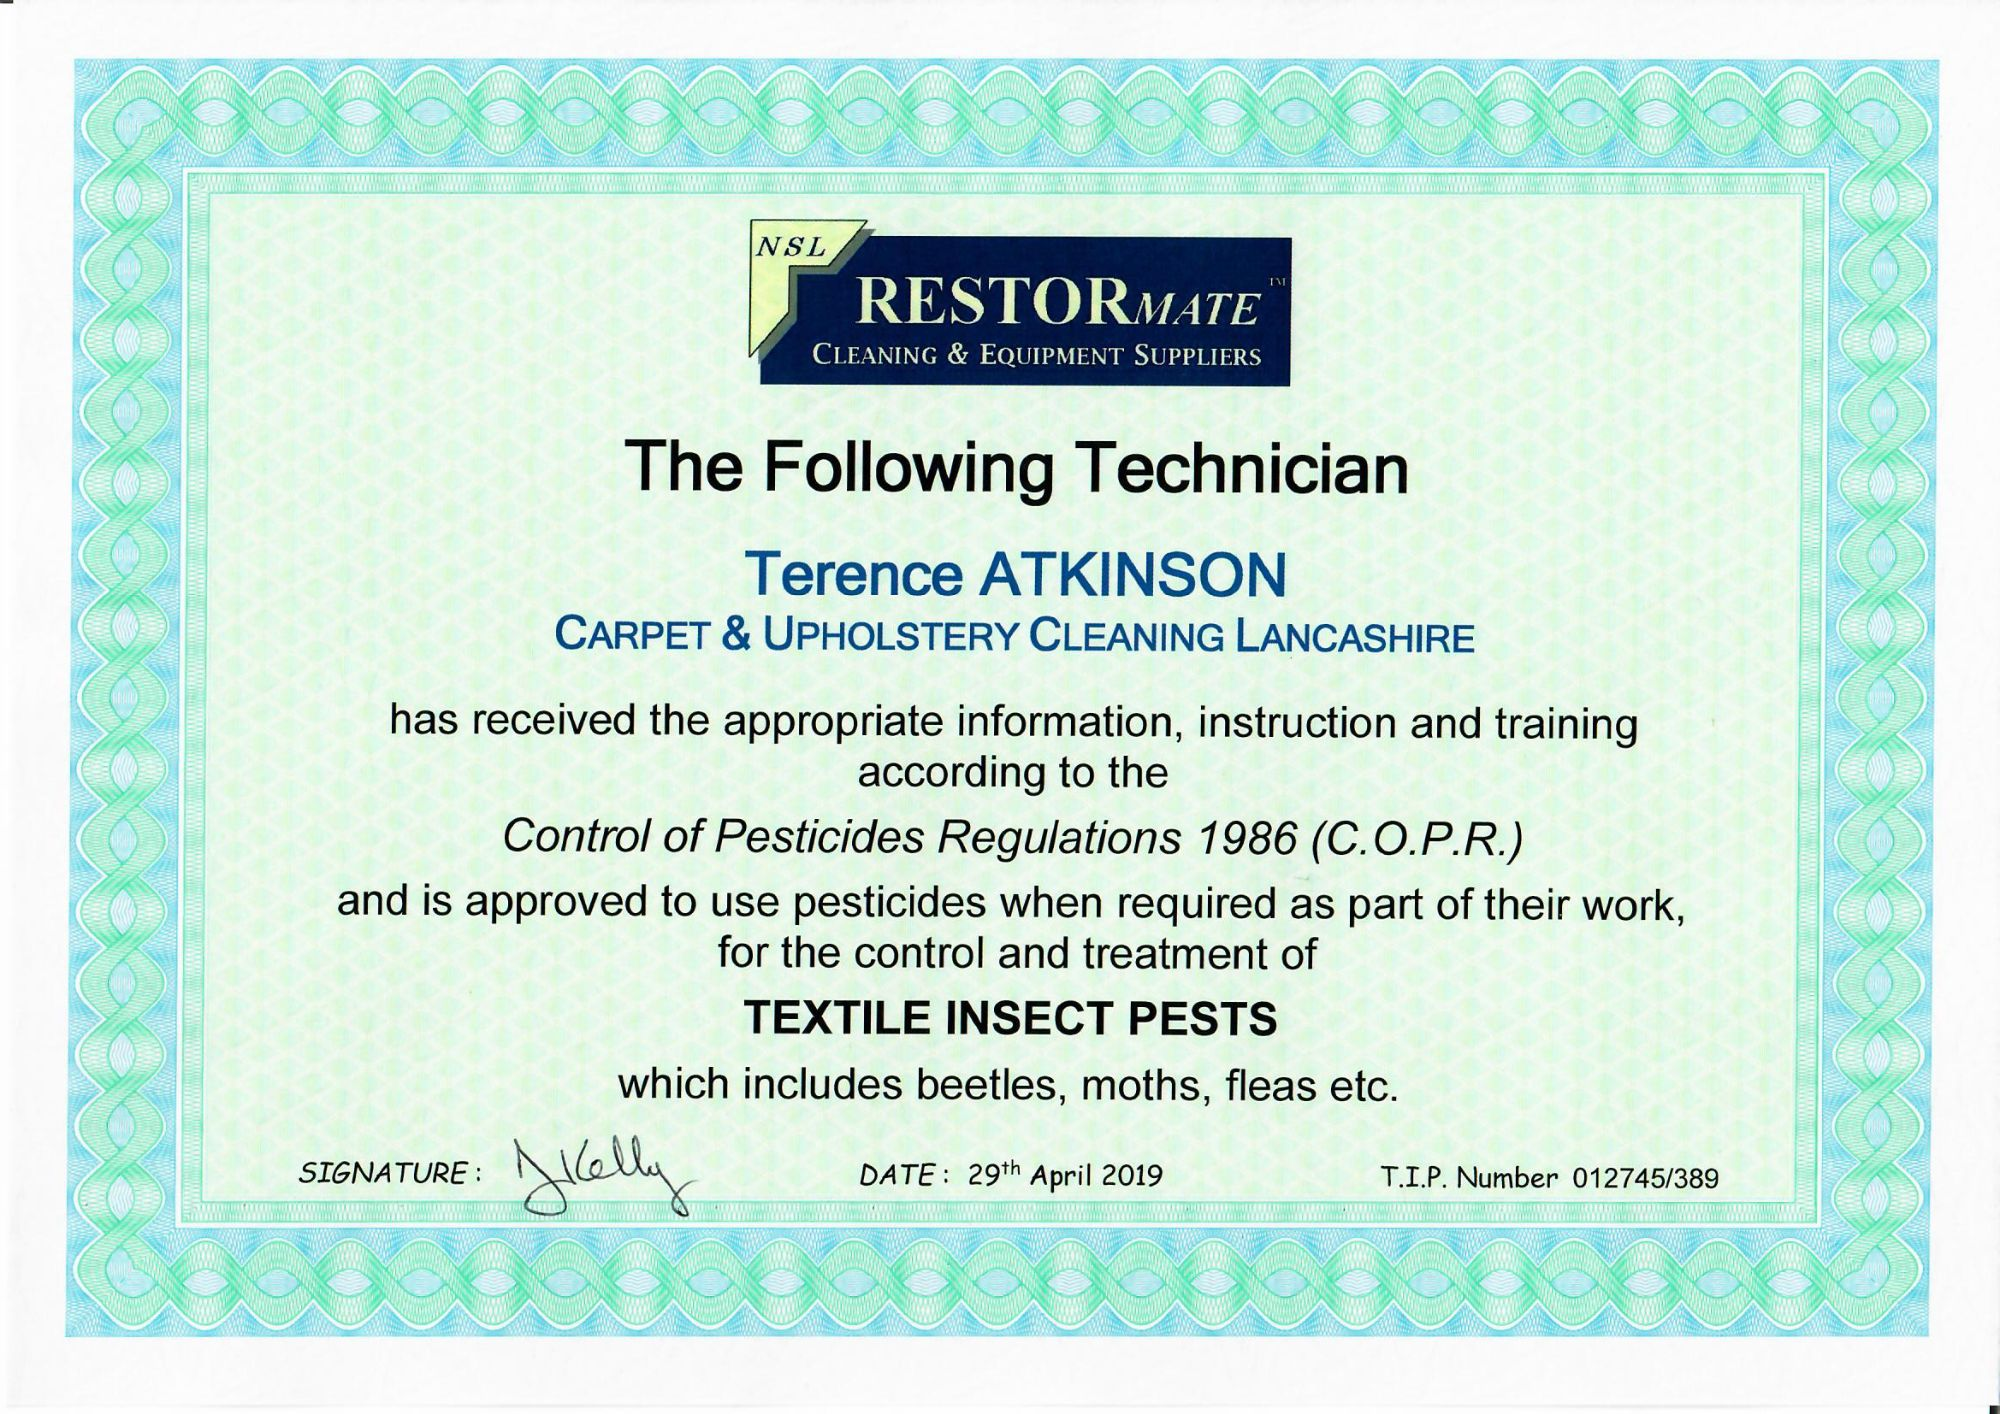 Textile Pest certification Carpet & Upholstery Cleaning Lancashire